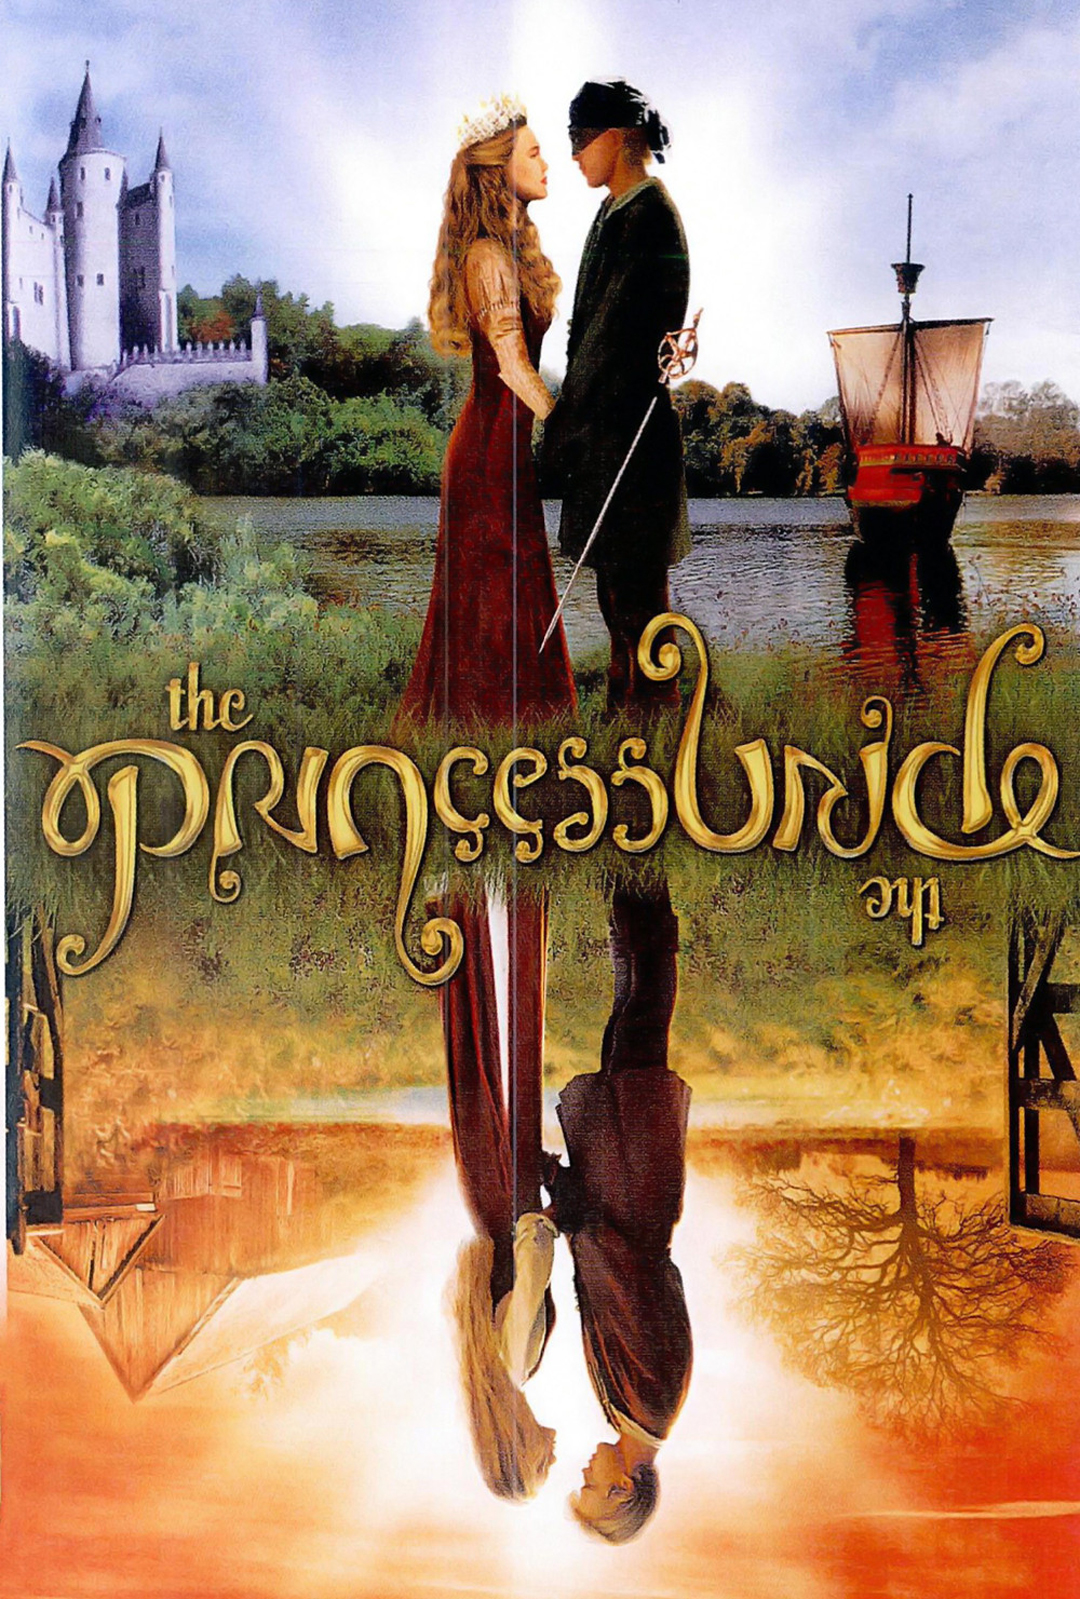 an analysis of the movie the princess bride It's been over 25 years since the princess bride came out here are the main characters as they appeared in the movie and as they are now (with a classic quote from each thrown in just for fun.